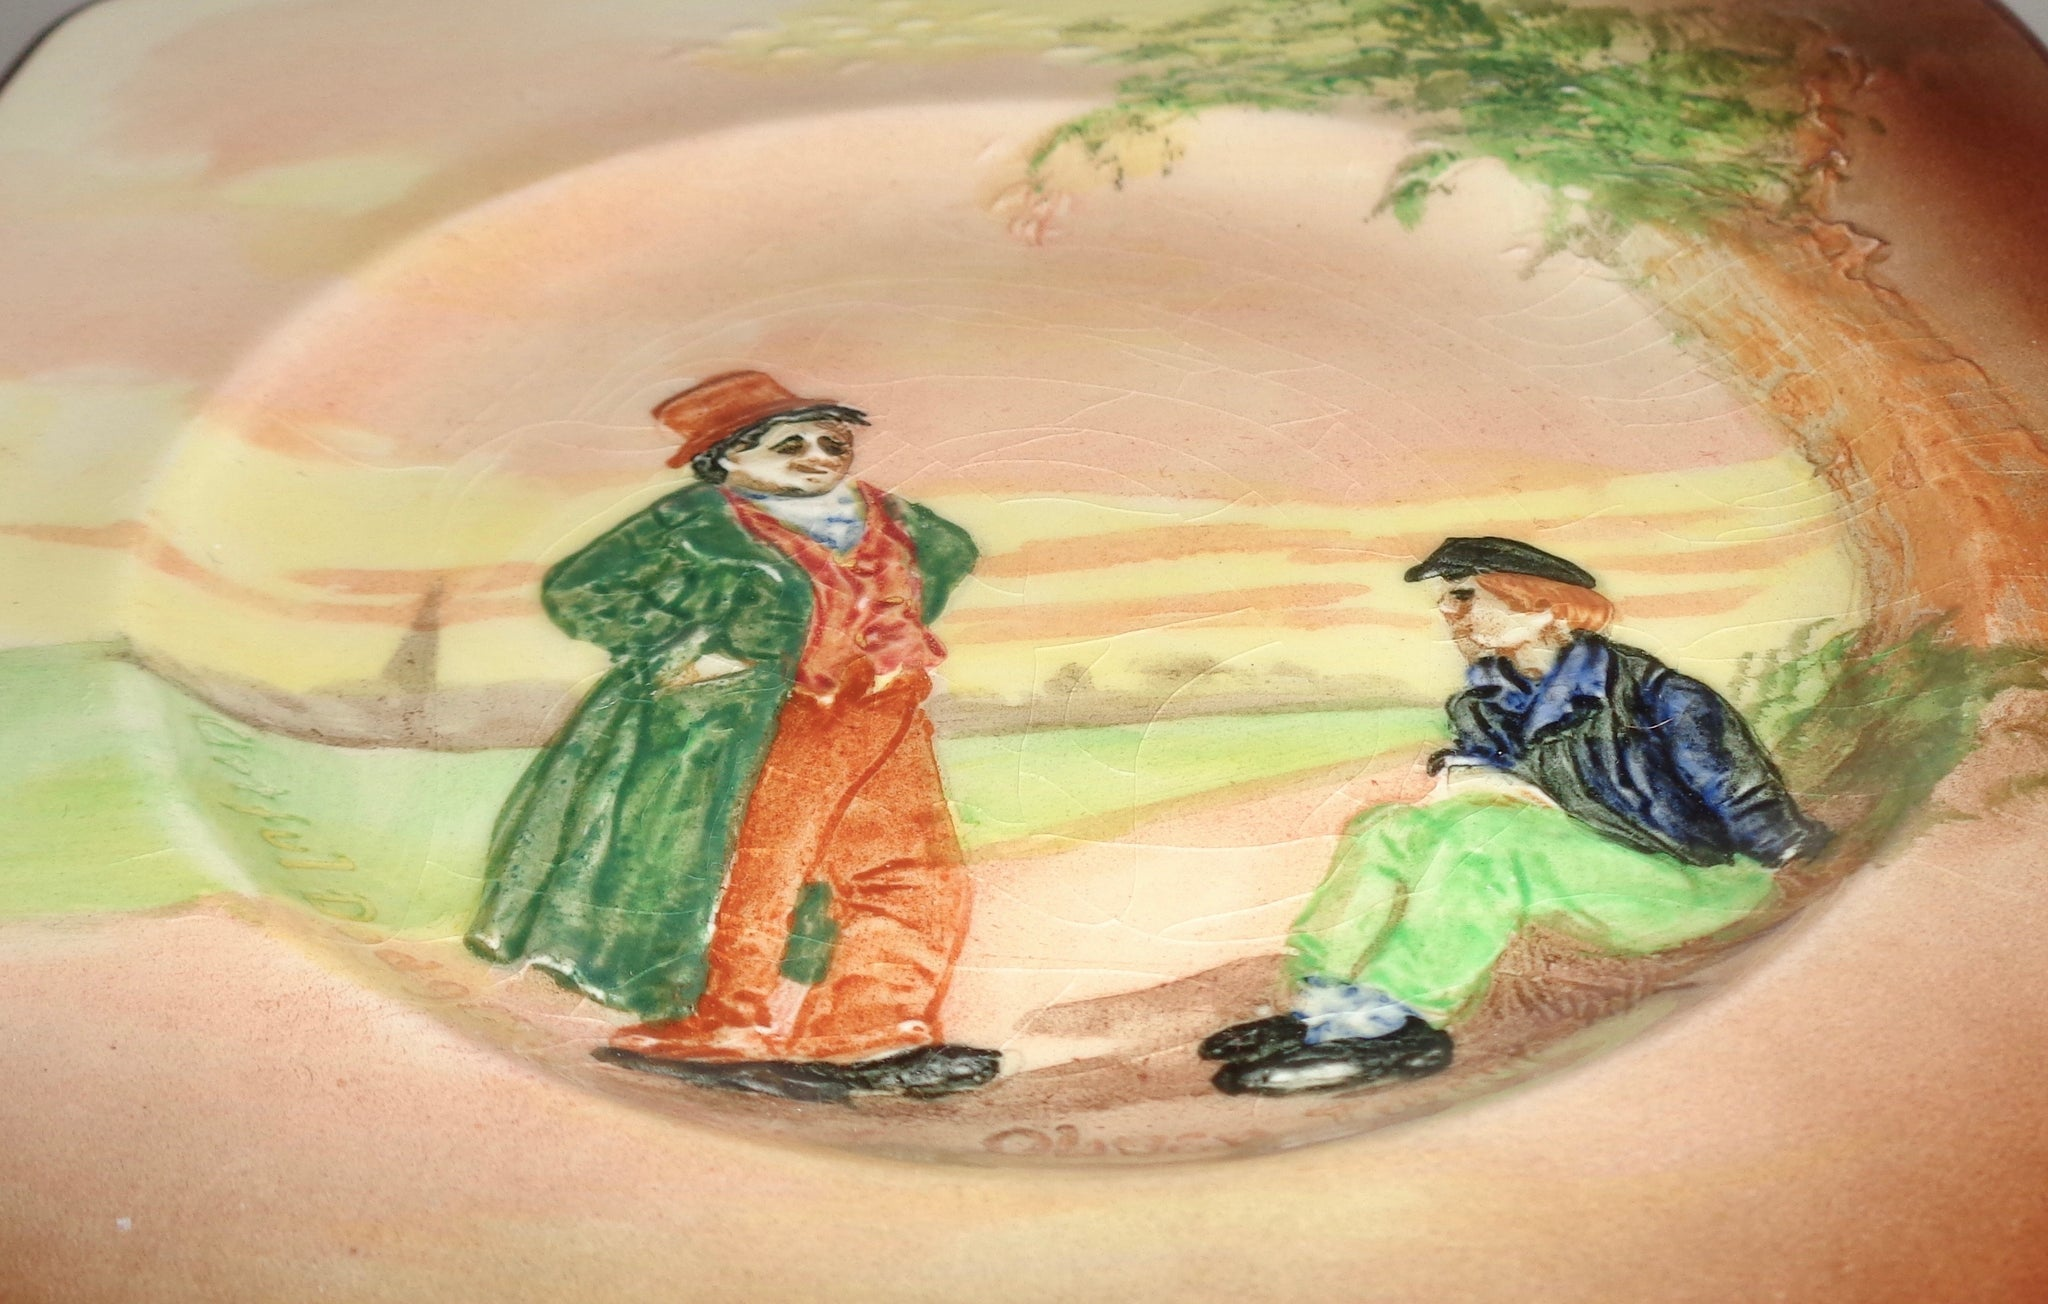 6 Plate With Relief Figures of Oliver Twist /& The Artful Dodger Oliver Twist Square Side Plate D5833 By Royal Doulton